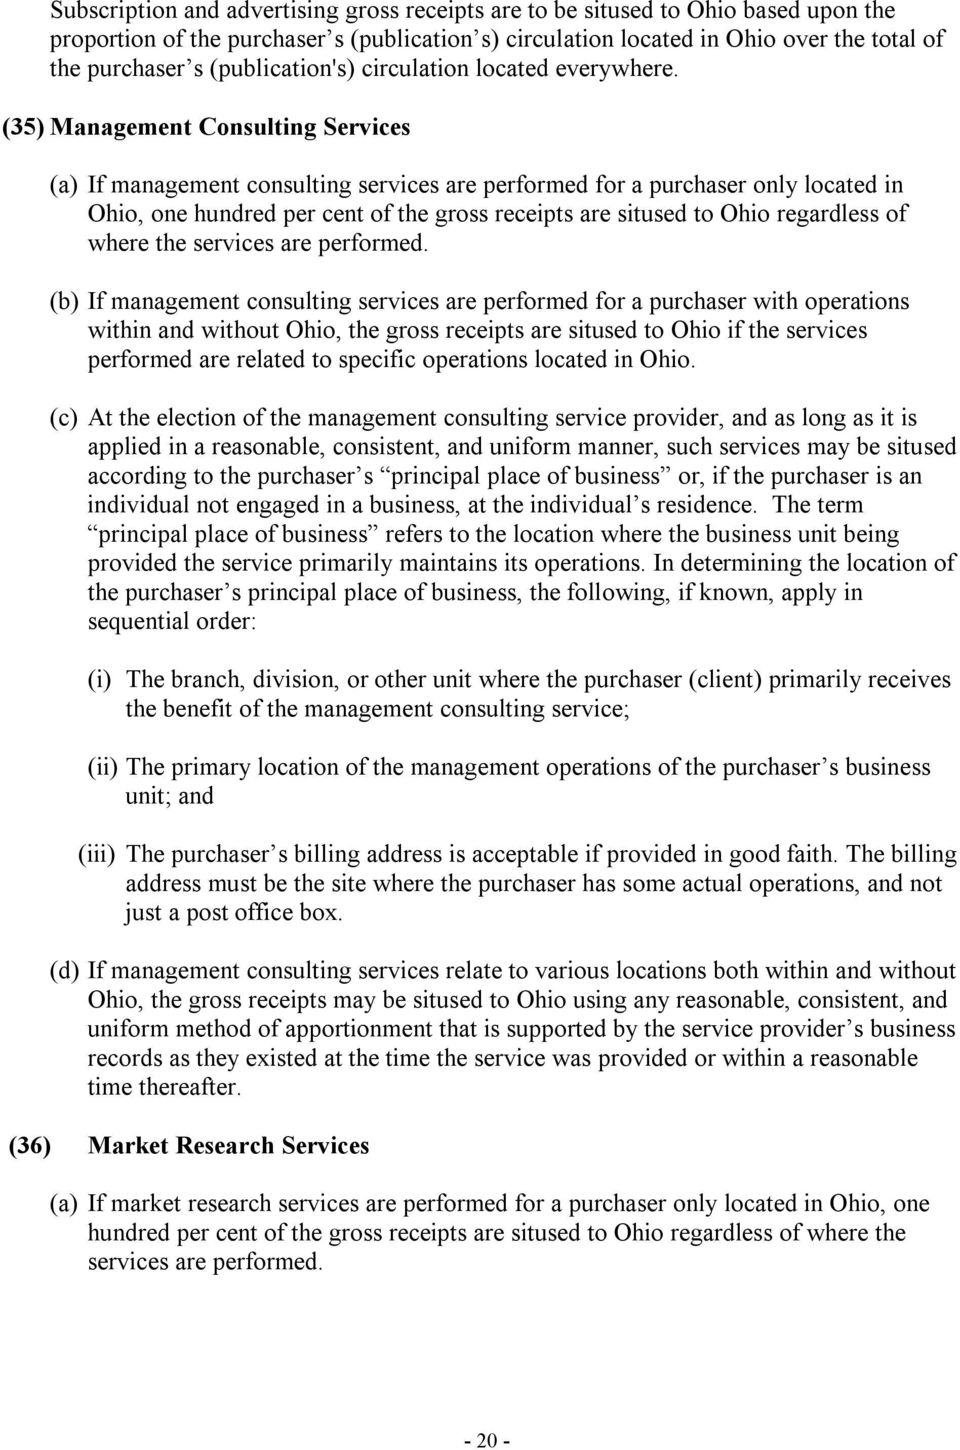 (35) Management Consulting Services (a) If management consulting services are performed for a purchaser only located in Ohio, one hundred per cent of the gross receipts are sitused to Ohio regardless